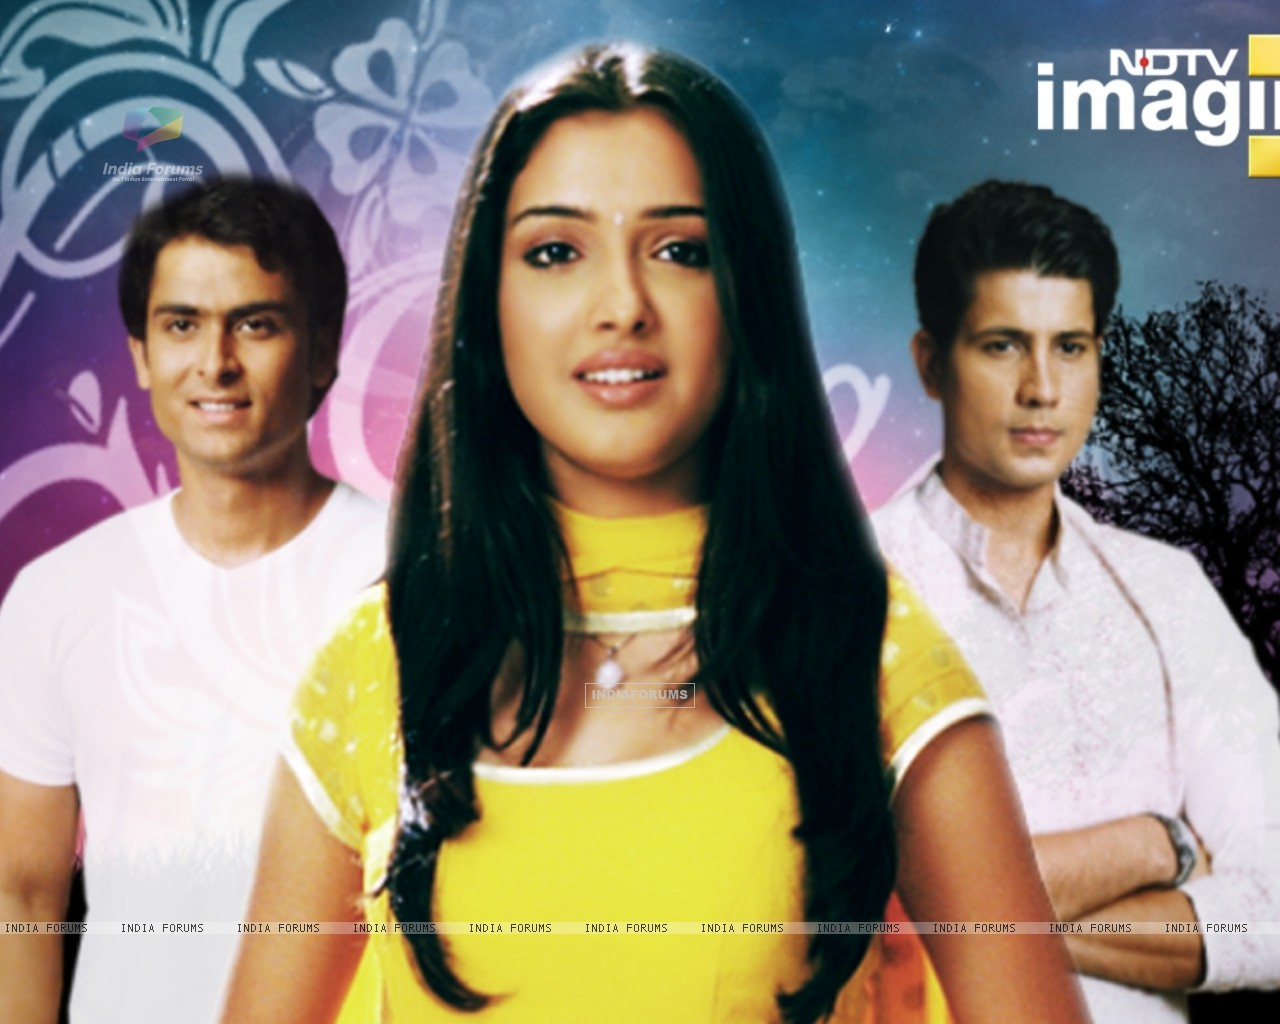 Amrapali, Shoaib and Sumit as Suman, Karan and Kartik in Rehna Hai Teri Palkon ki Chaaon Mein (32262) size:1280x1024